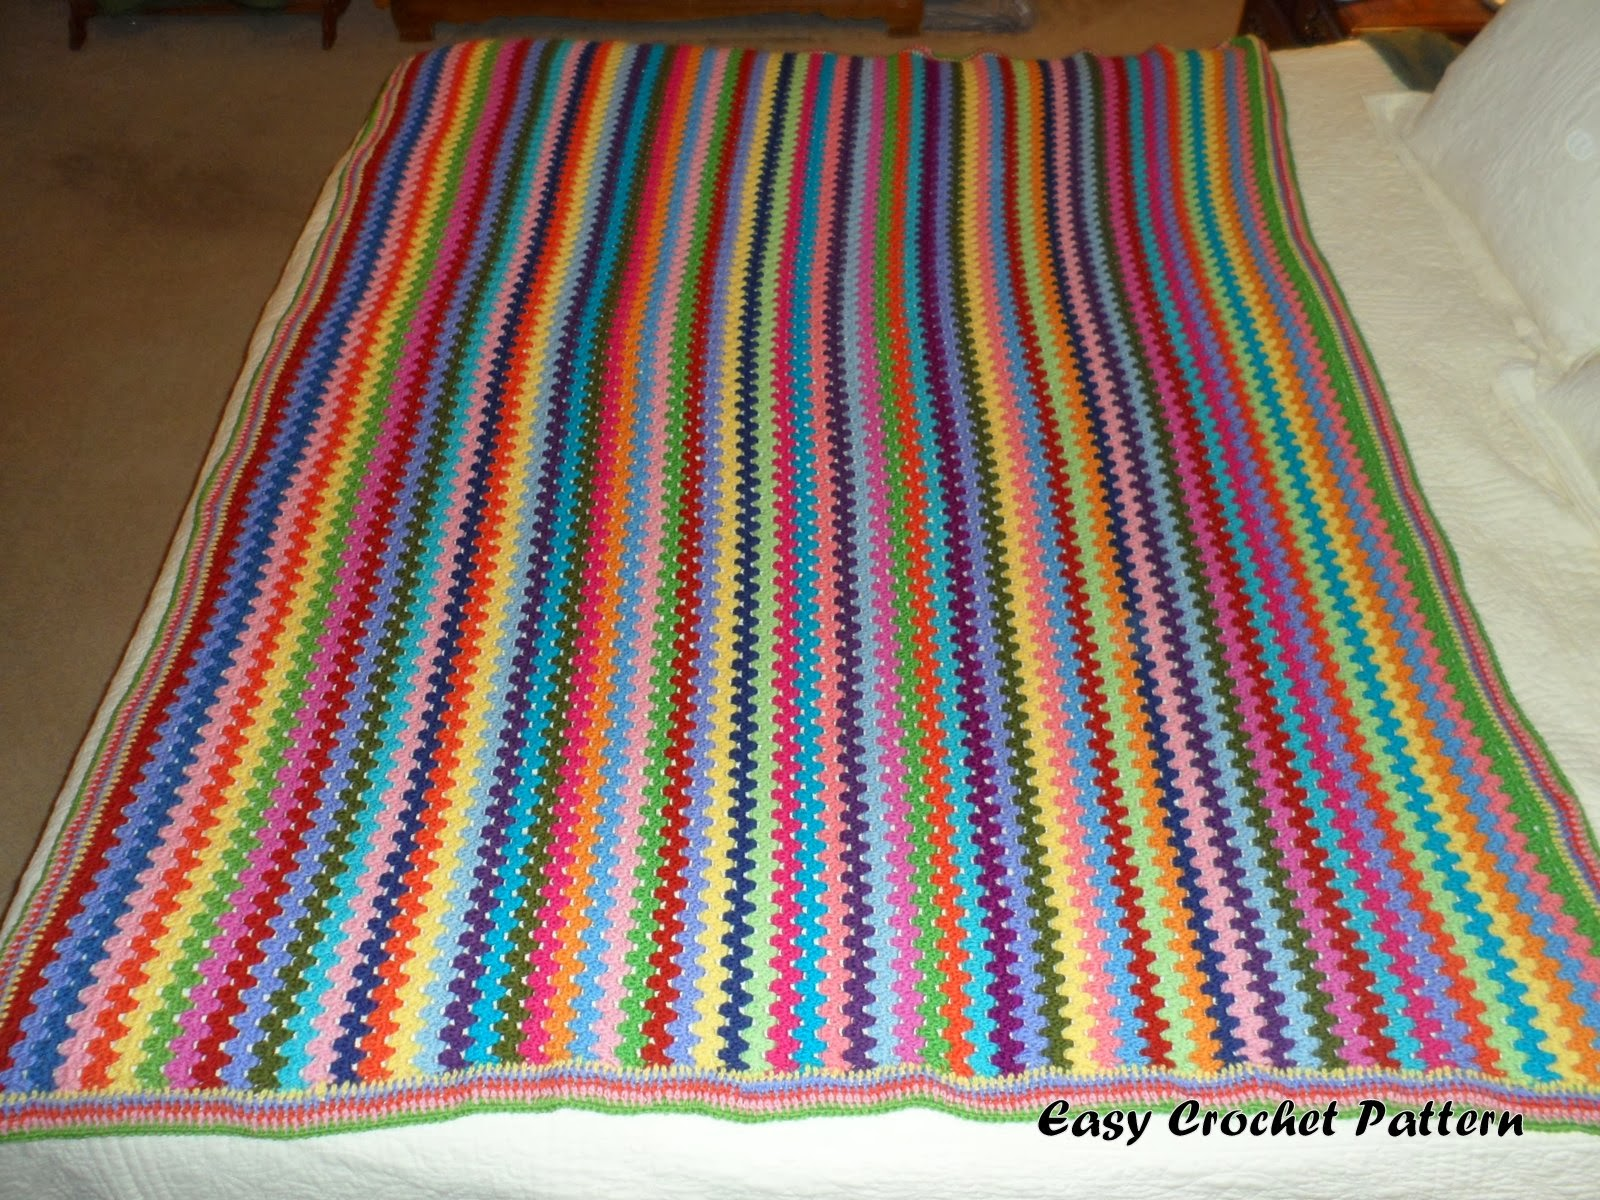 Temperature Afghan Knitting Pattern : Easy Crochet Pattern: Granny Stripe Afghan Chart